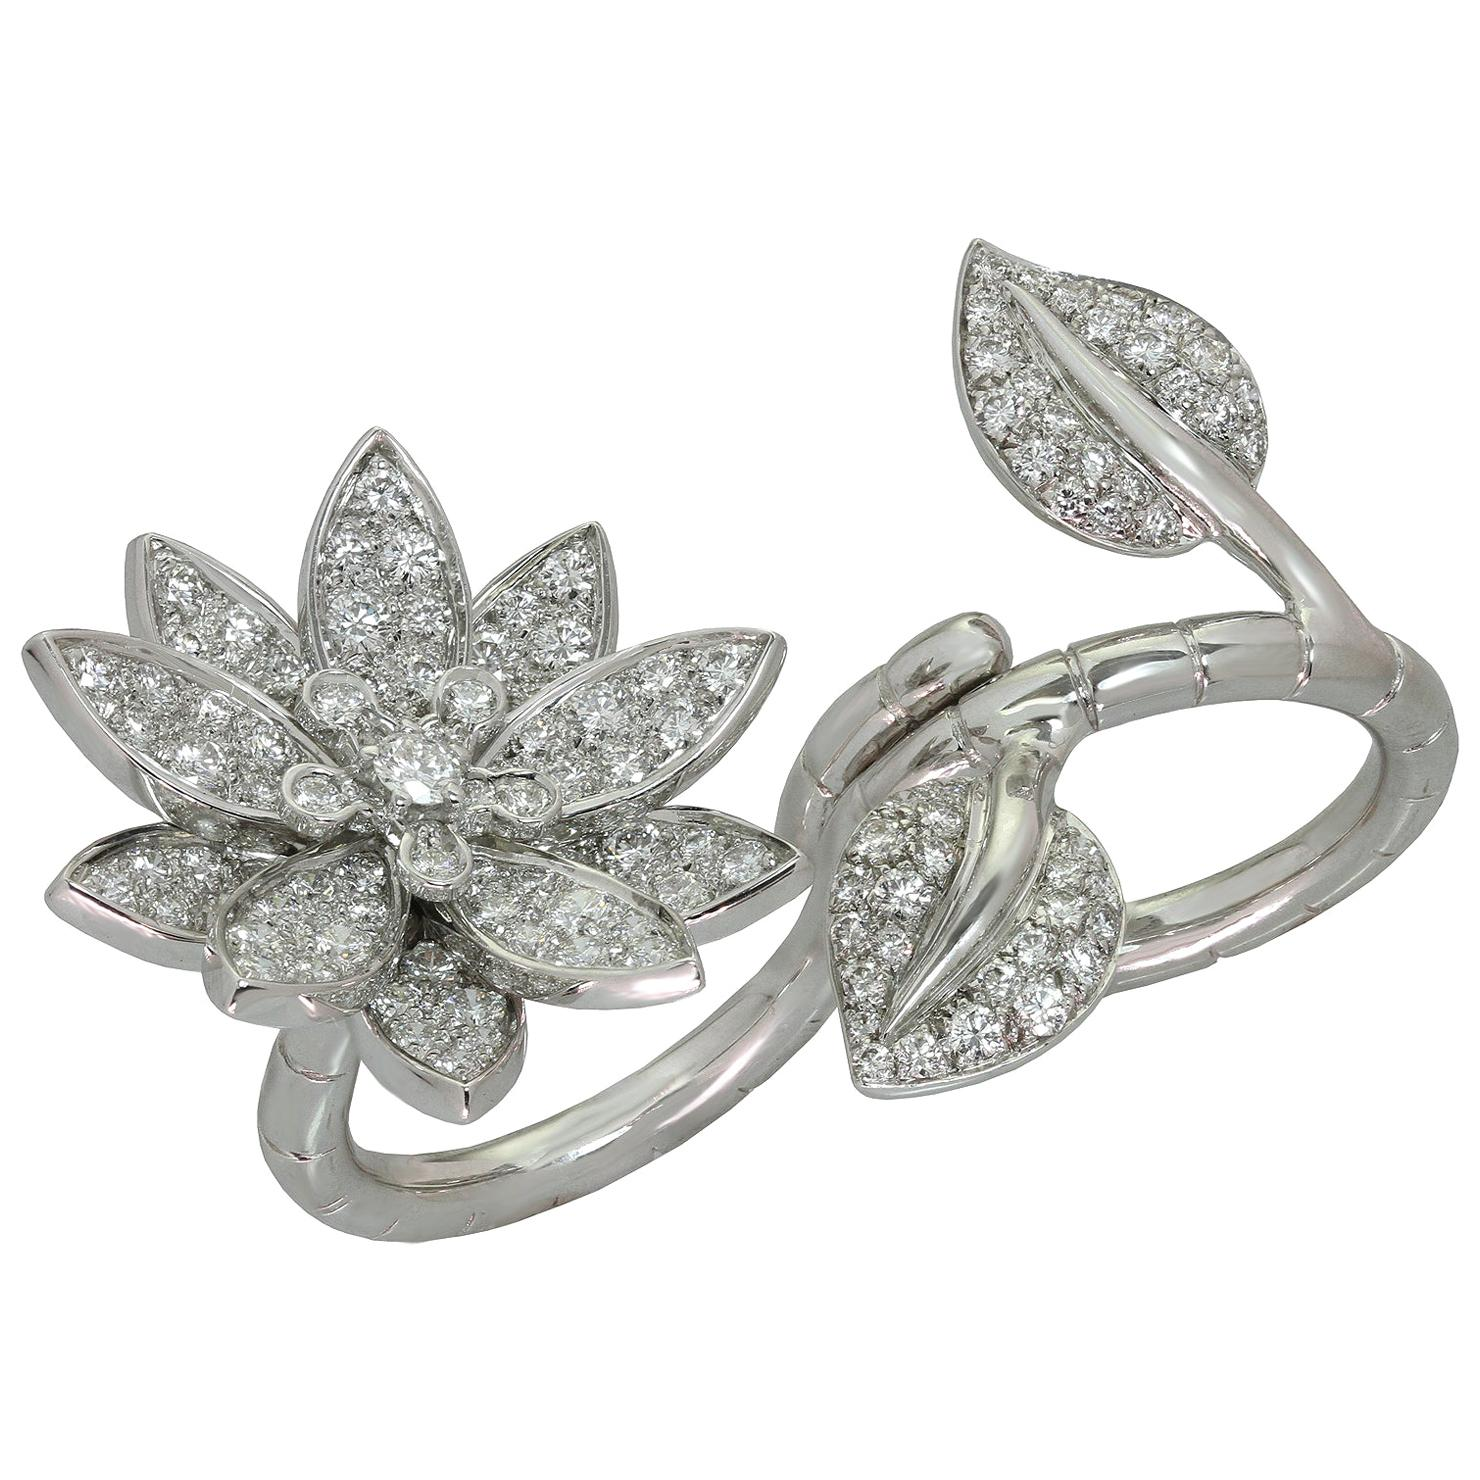 Van Cleef & Arpels Lotus Between the Finger Diamond White Gold Ring